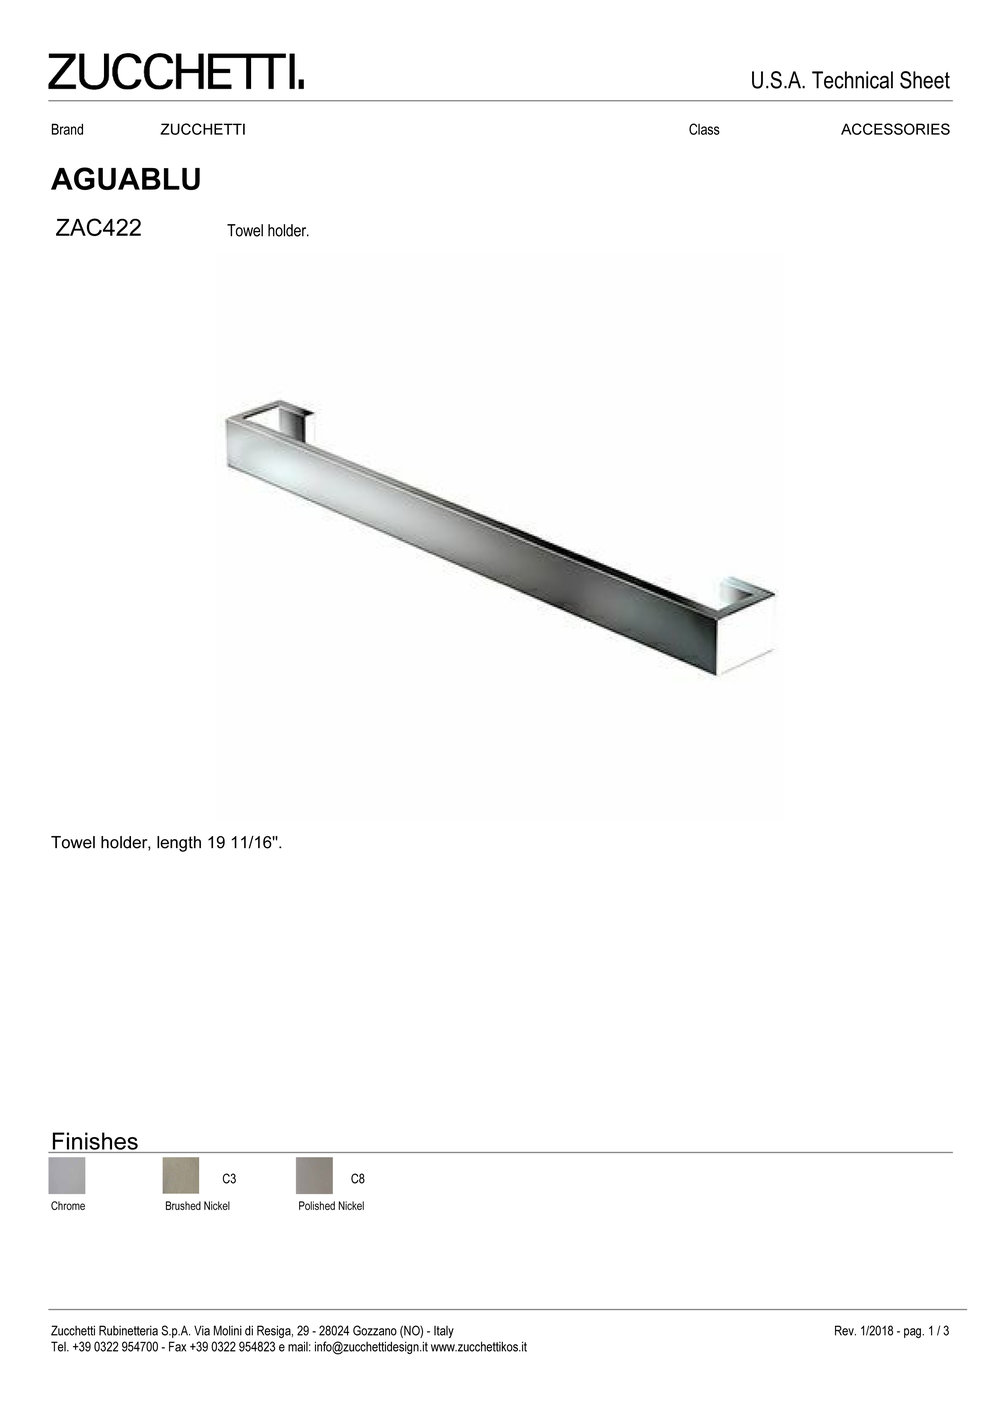 Zuchetti Aquablu towel rail, 50 w x 6,5 projection x 4cm tall, PC, BN-1.jpg